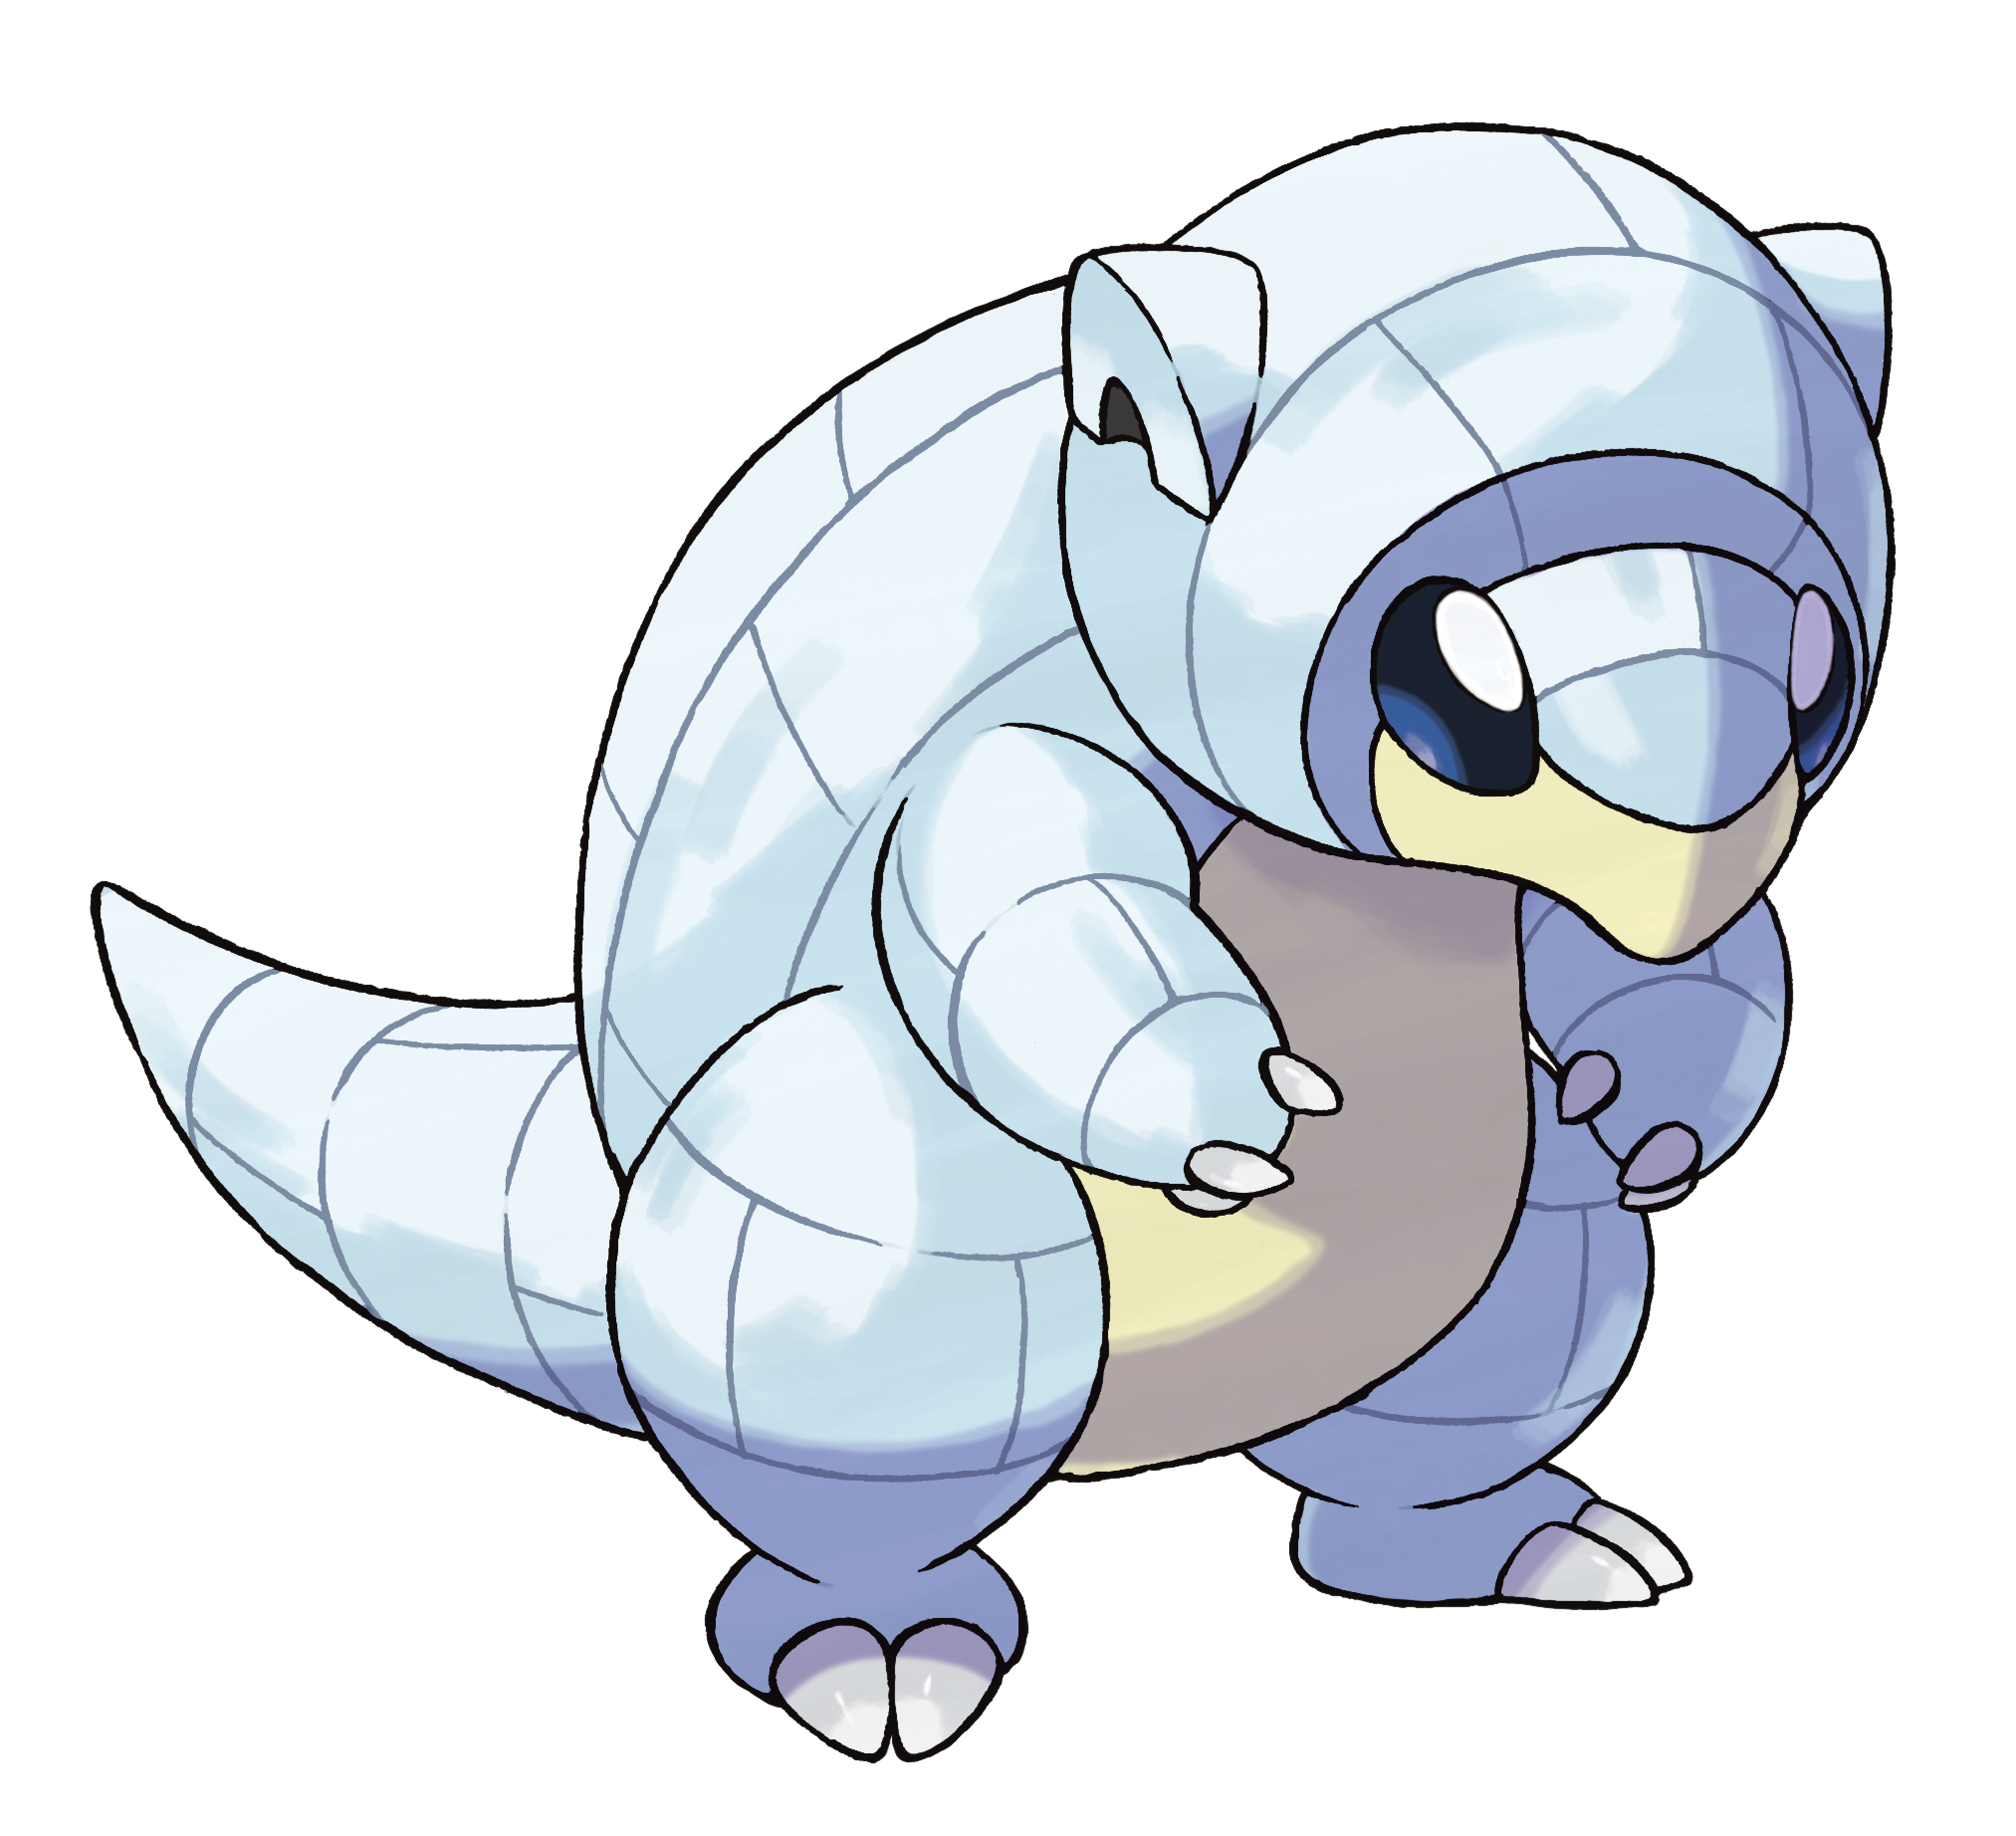 It's possible that natural selection led to the evolution of the Alolan Sandshrew, better suited than the original to living in snowy environments.